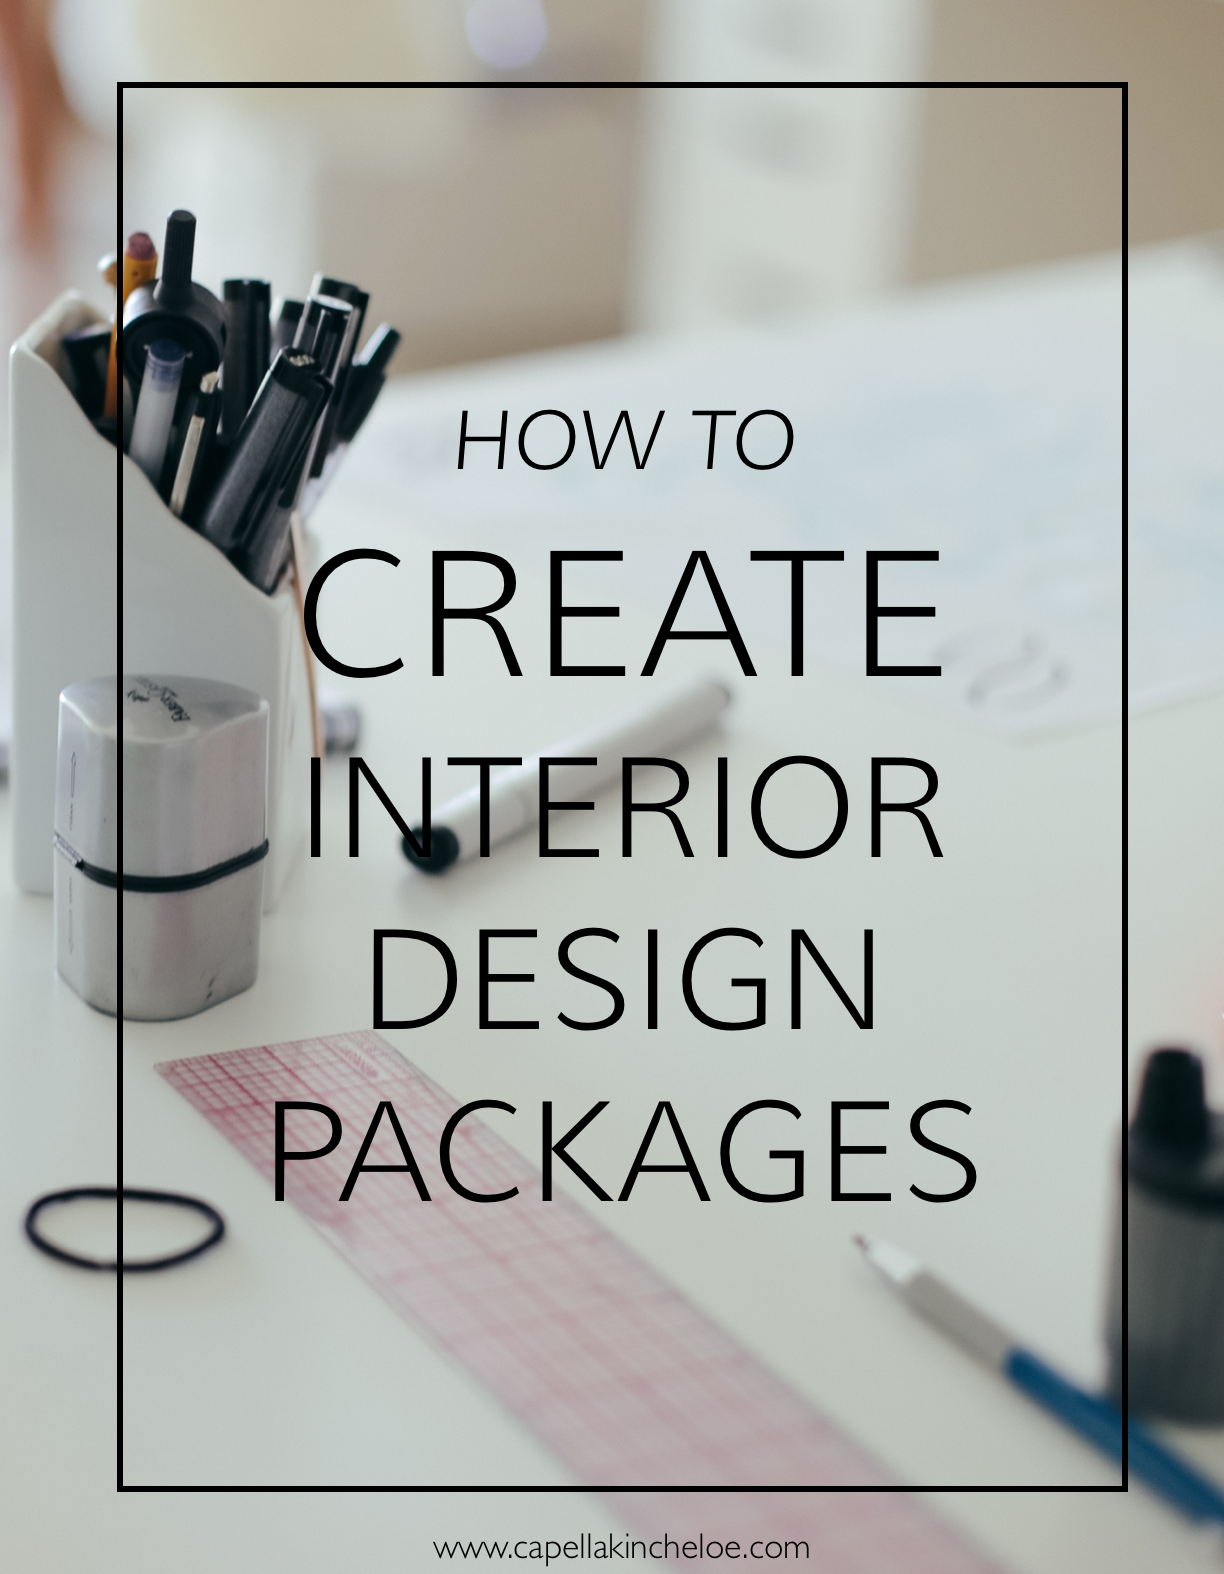 Looking To Create Packages For Added Revenue Streams Your Interior Design Business Interiordesignbusiness Capellakincheloe Interiordesignpackages